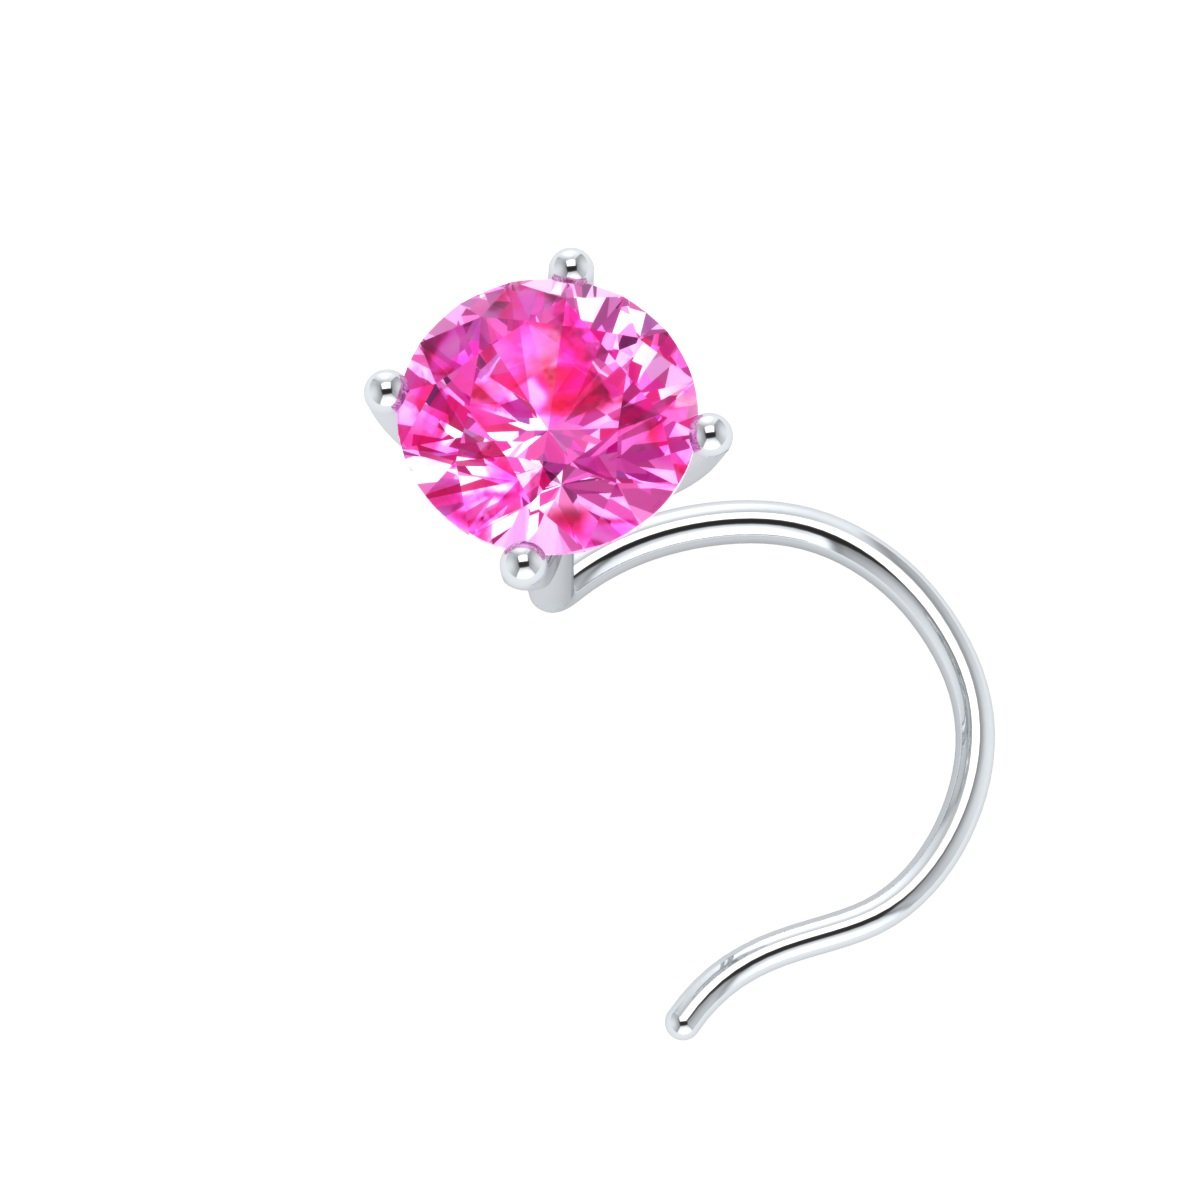 Demira Jewels 3.50 mm Round 4-Prong Real Pink Sapphire 14k Gold Solitaire Wedding Nose Piercing Stud Pin